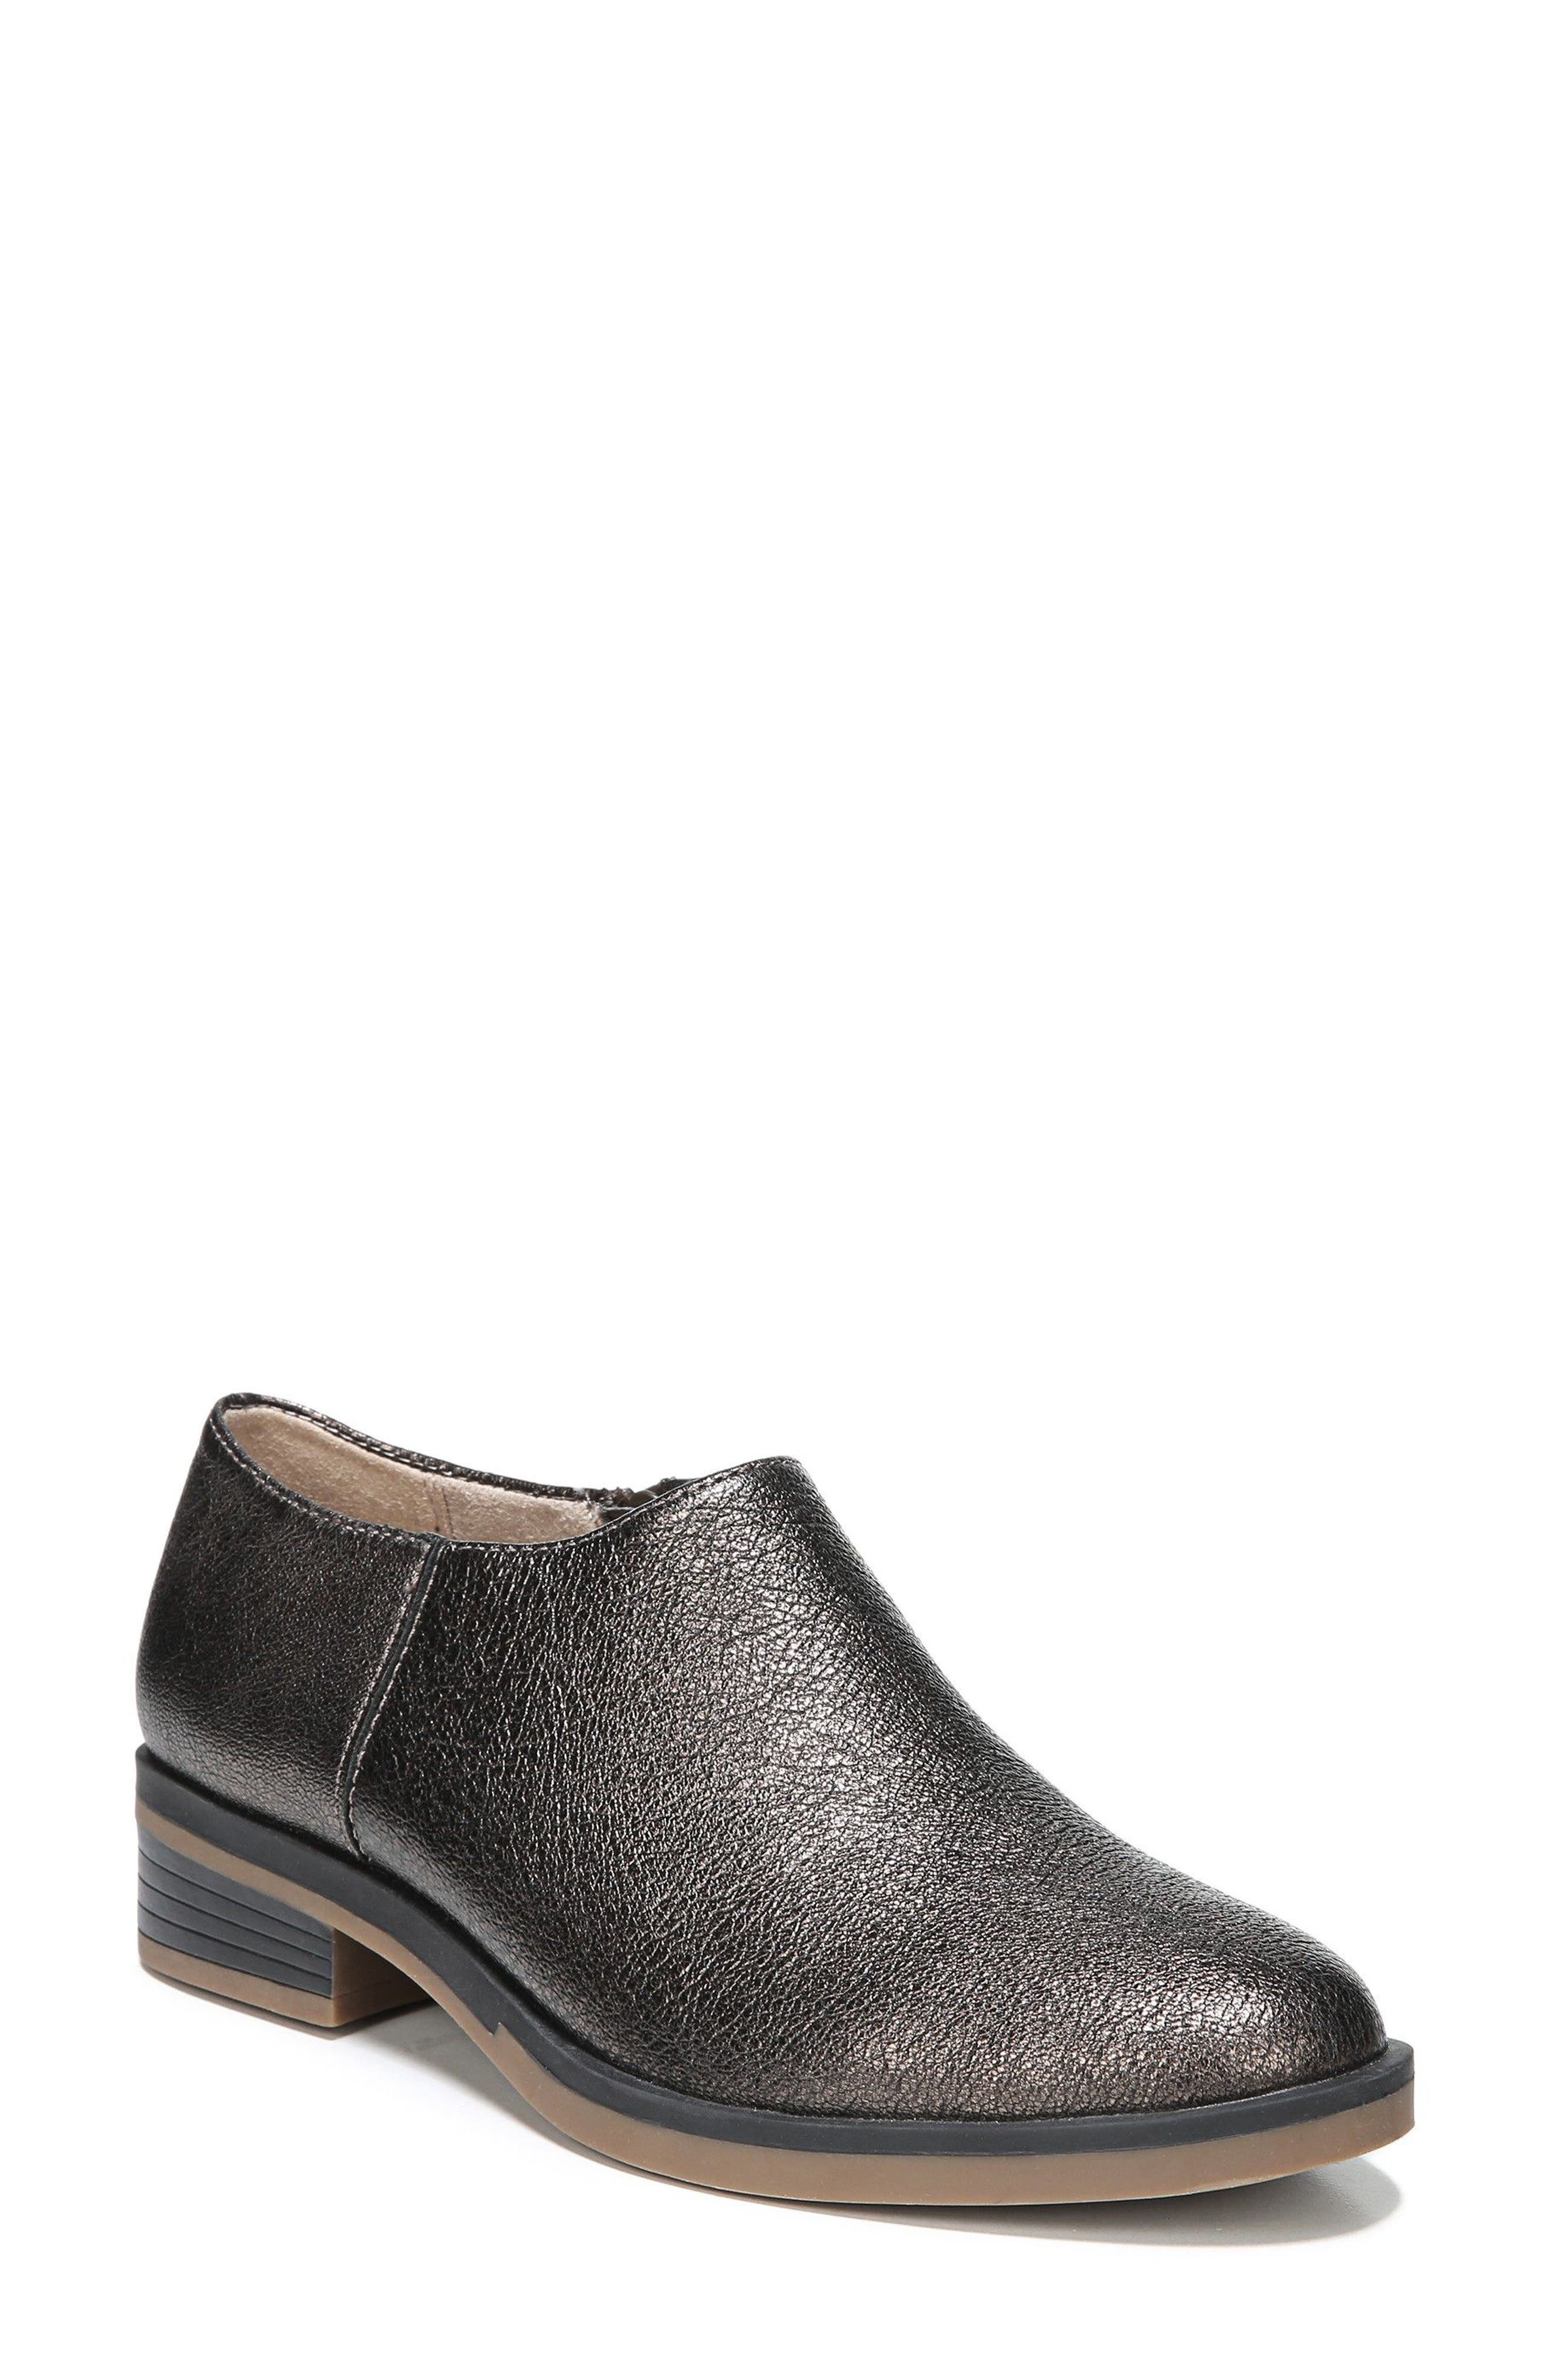 Reagan Bootie,                         Main,                         color, Bronze Leather